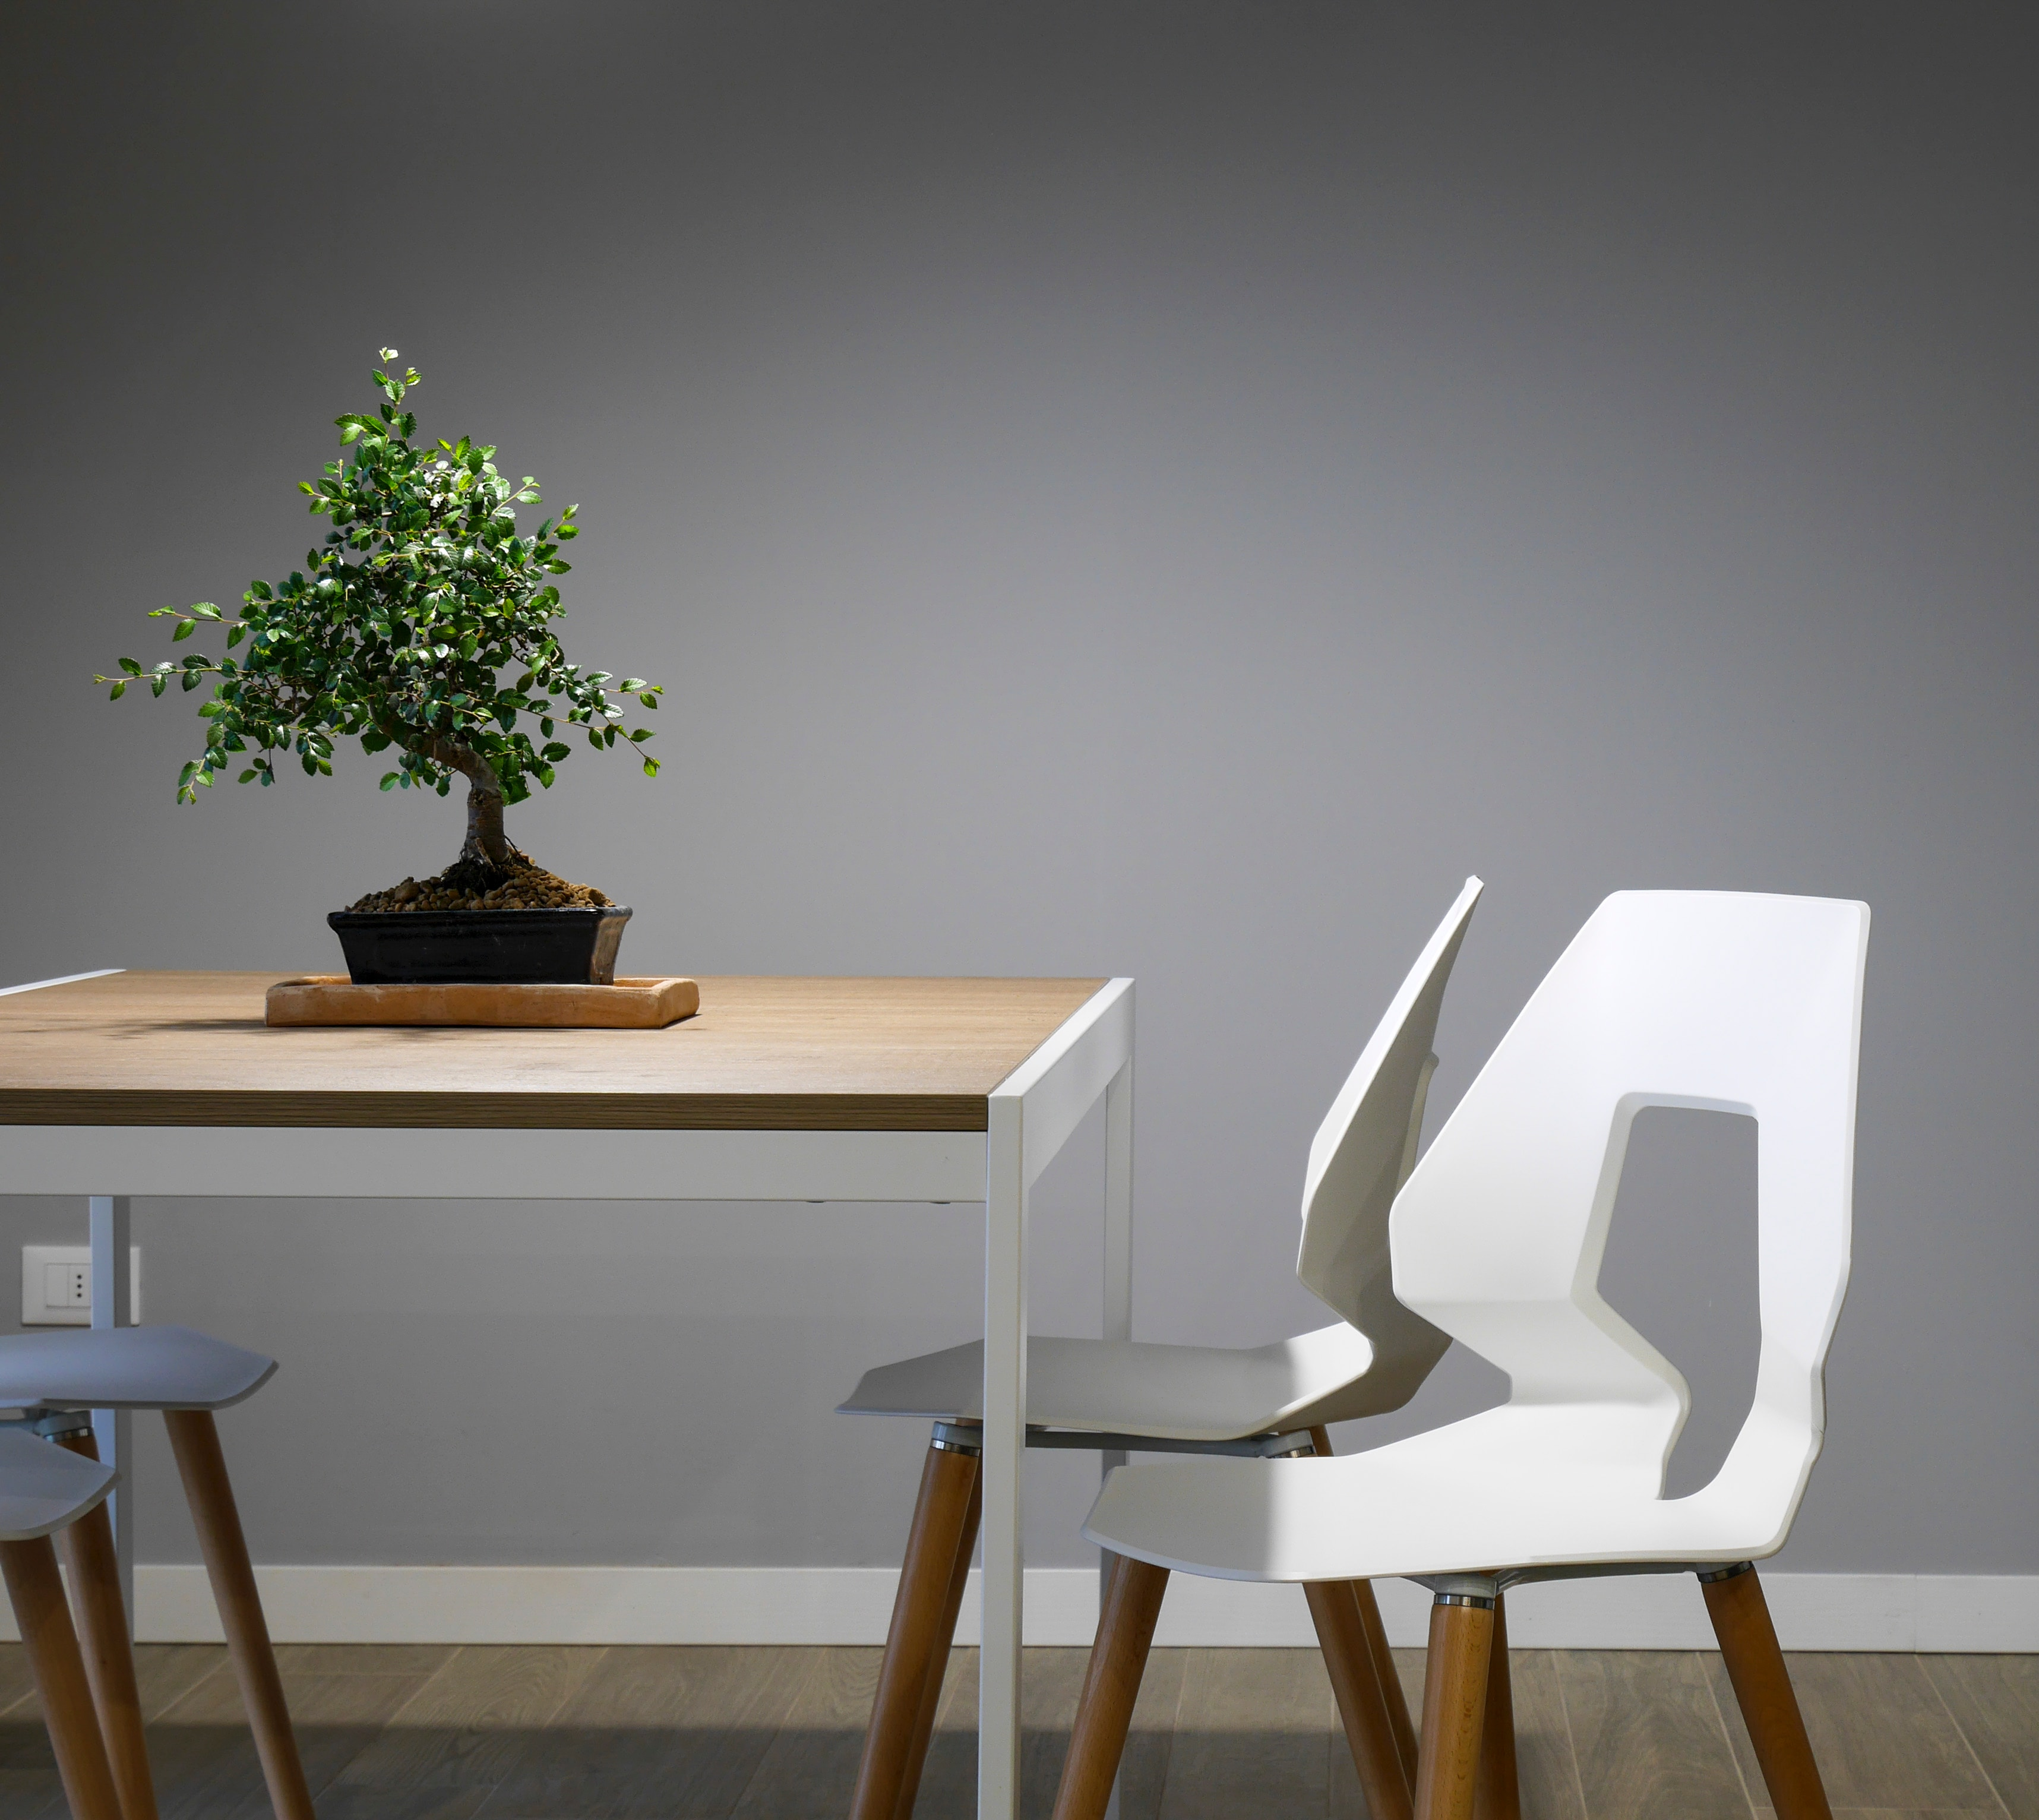 Chairs and table with tiny decorative tree